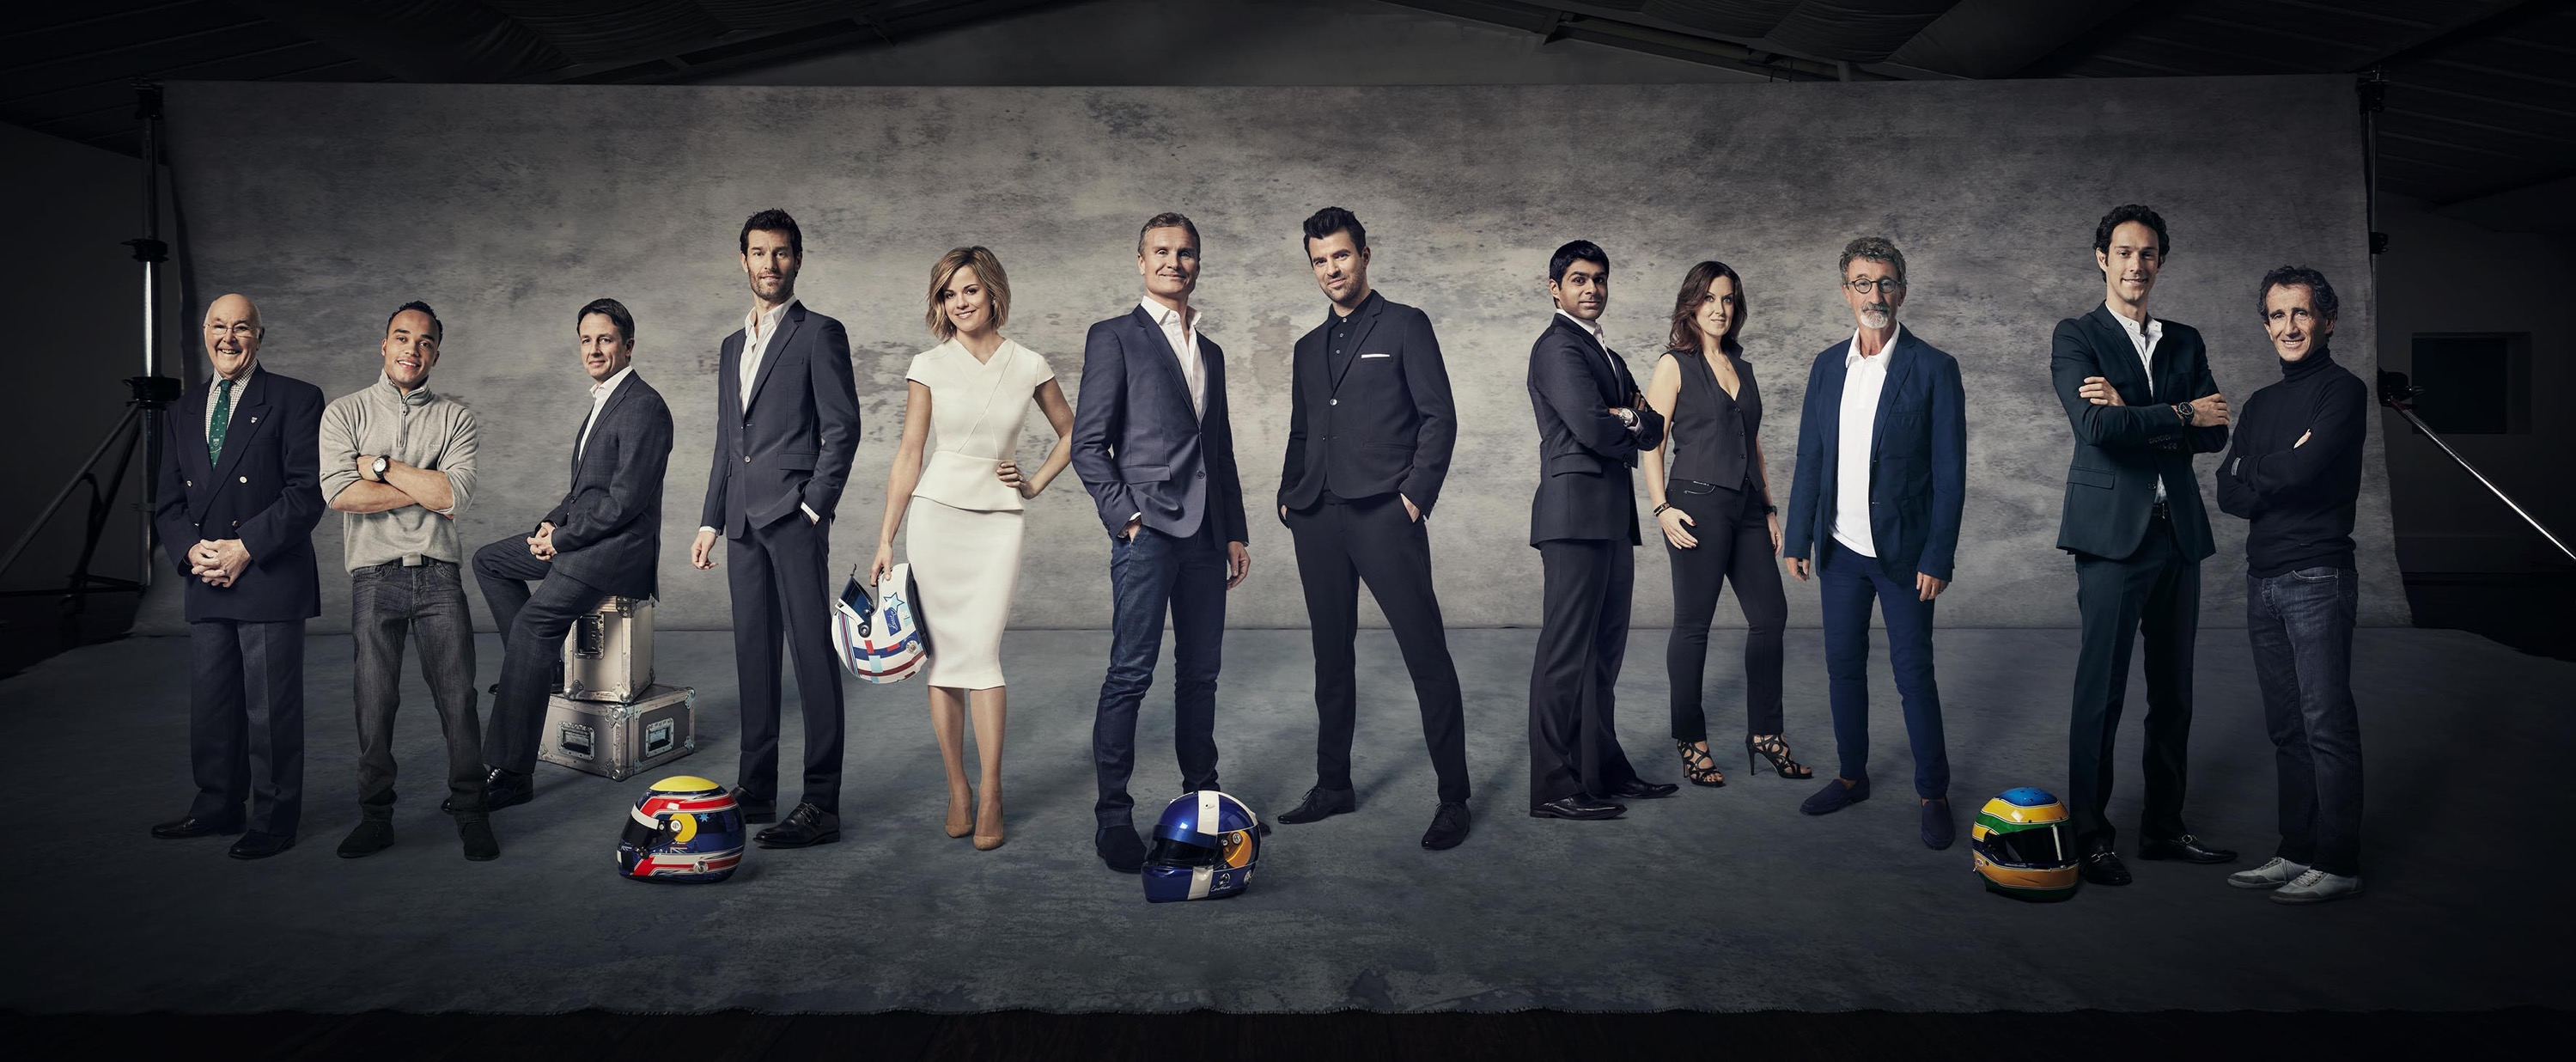 channel 4 f1 lineup steve jones david coulthard susie wolff mark webber